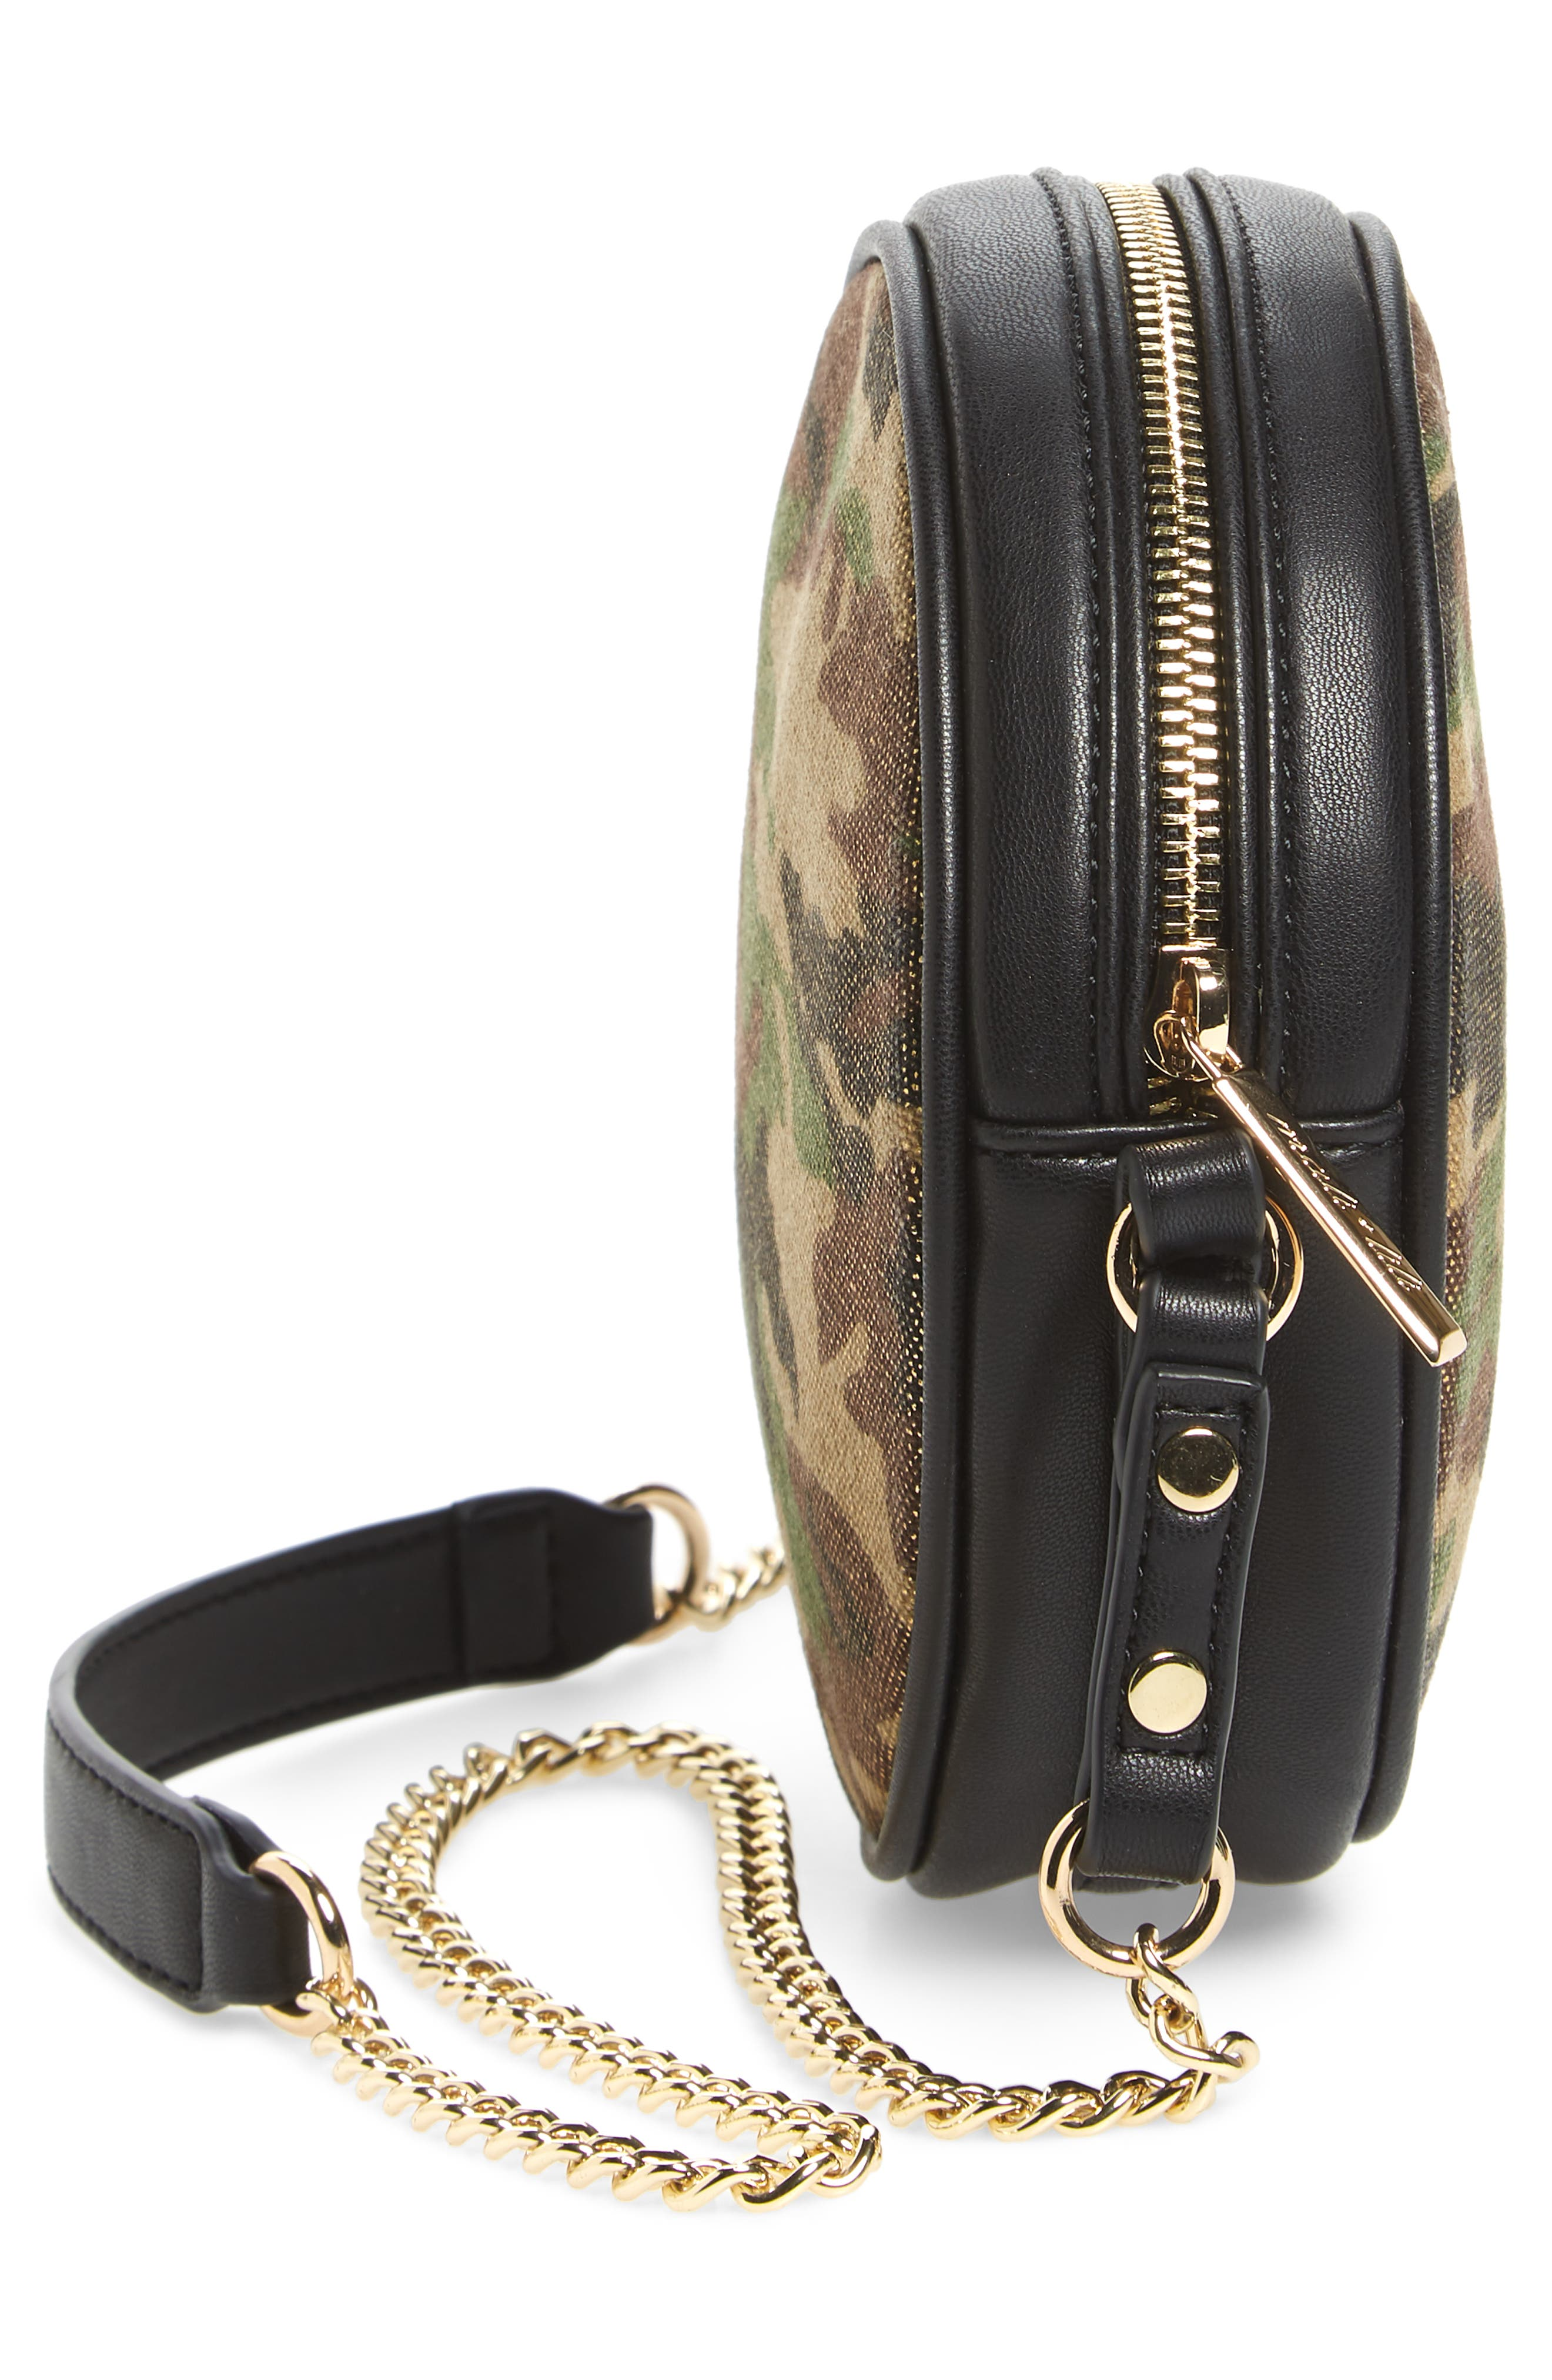 Mali + Lili Camouflage Vegan Leather Canteen Crossbody Bag,                             Alternate thumbnail 5, color,                             Camouflage